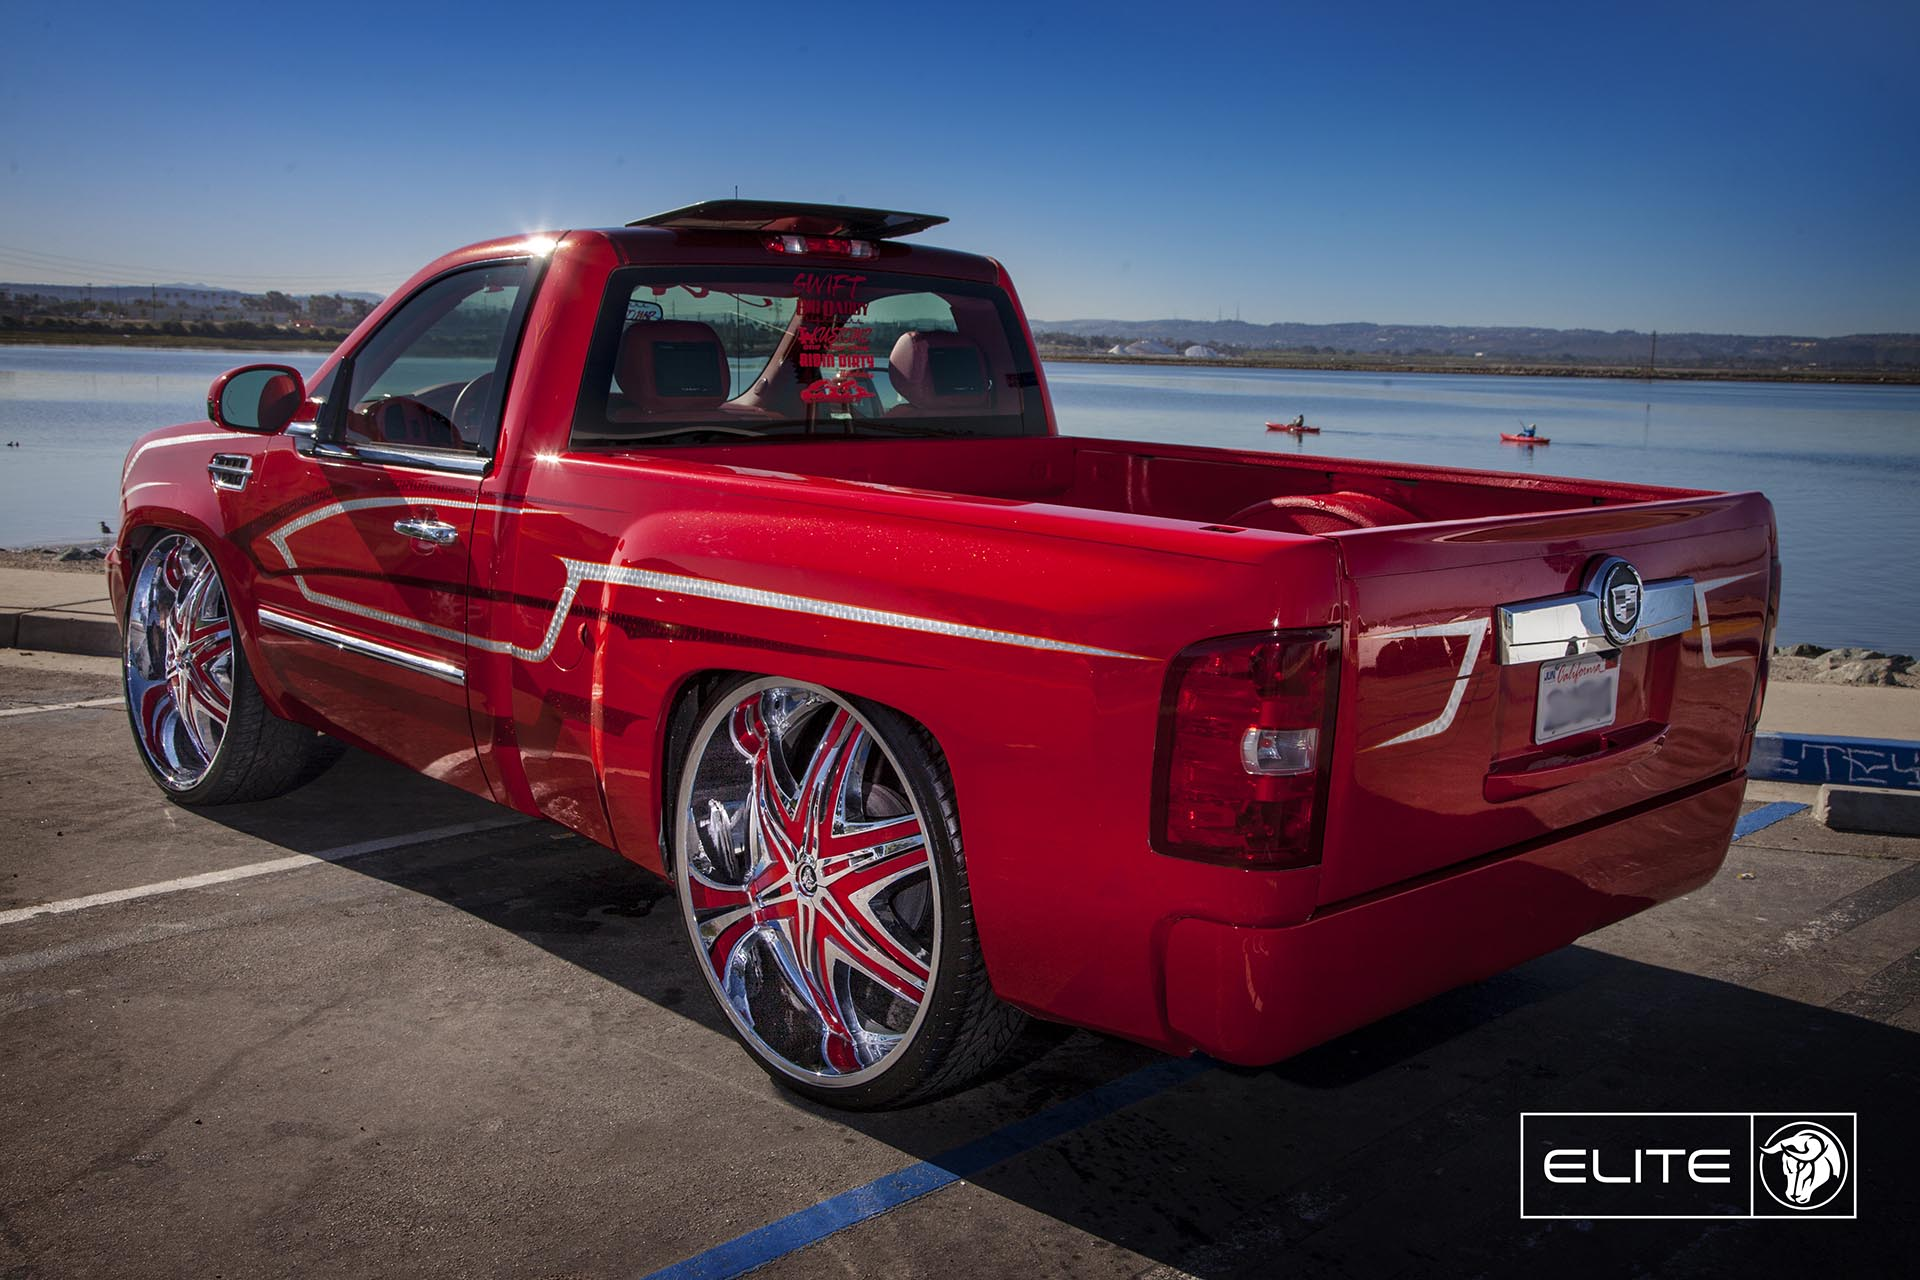 Chrome Diablo Elite Wheels on a Chevy Silverado